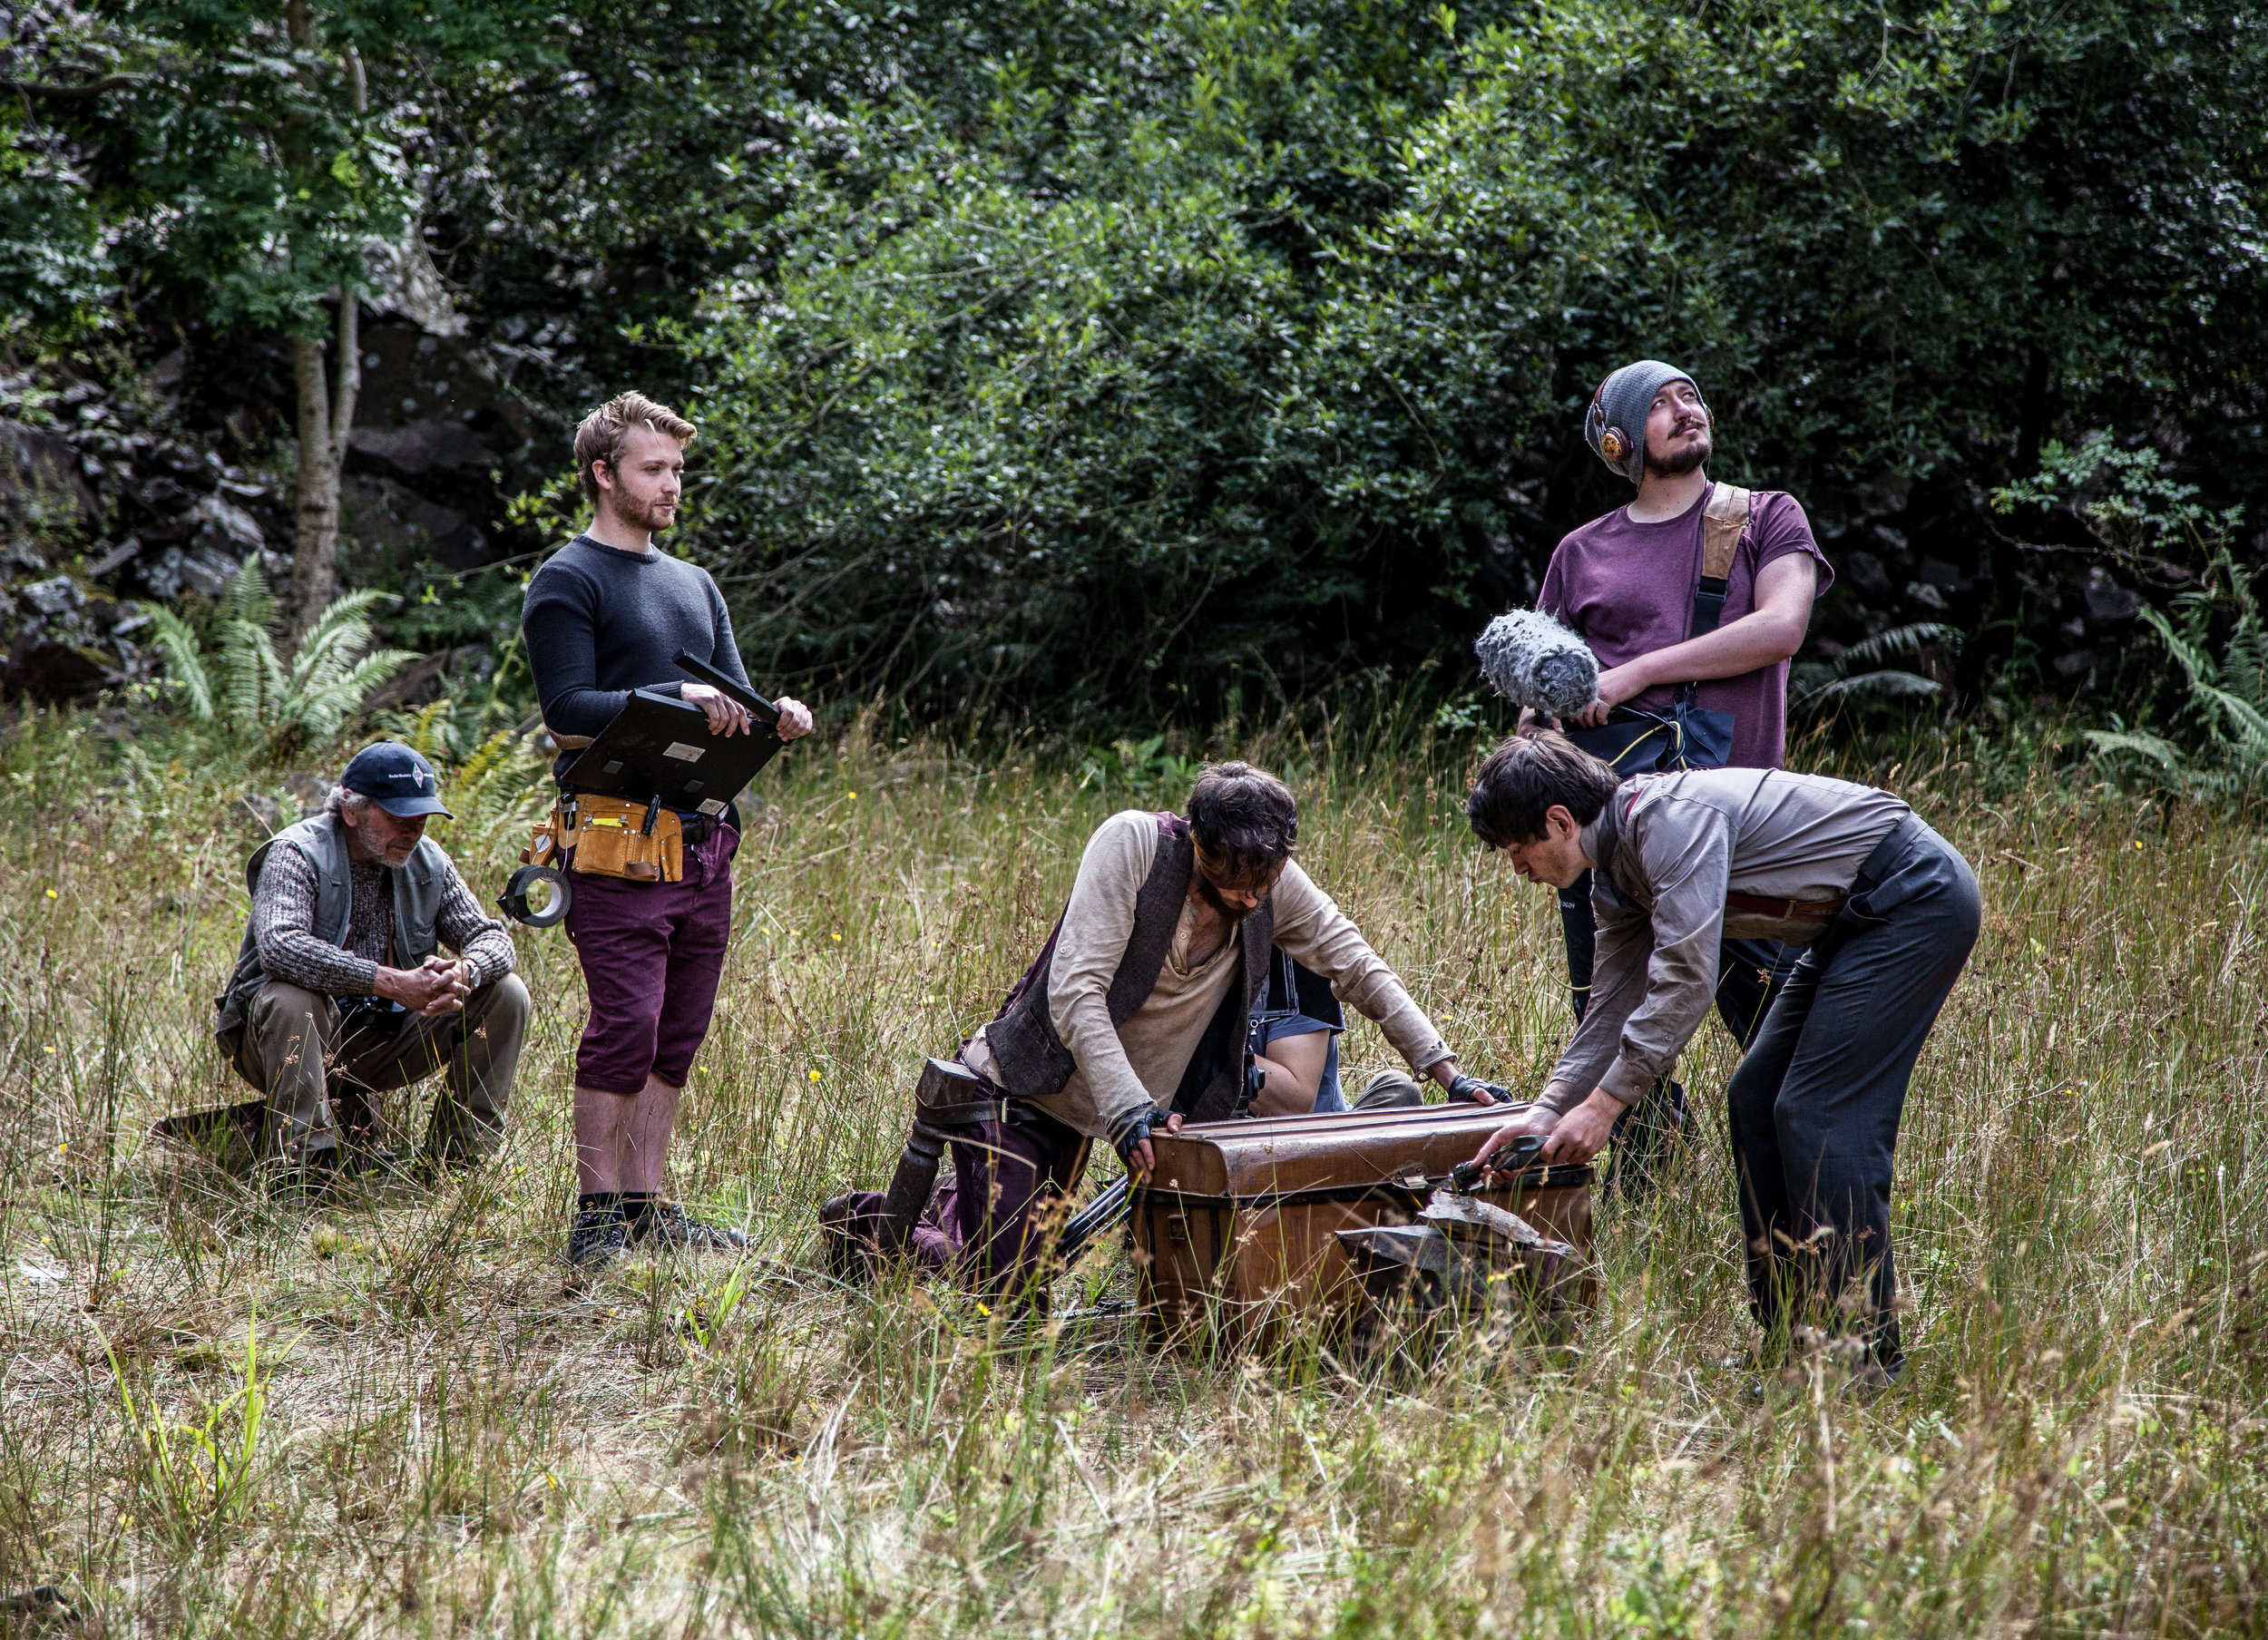 DSR - Filming the treasure chest scene-8.jpg